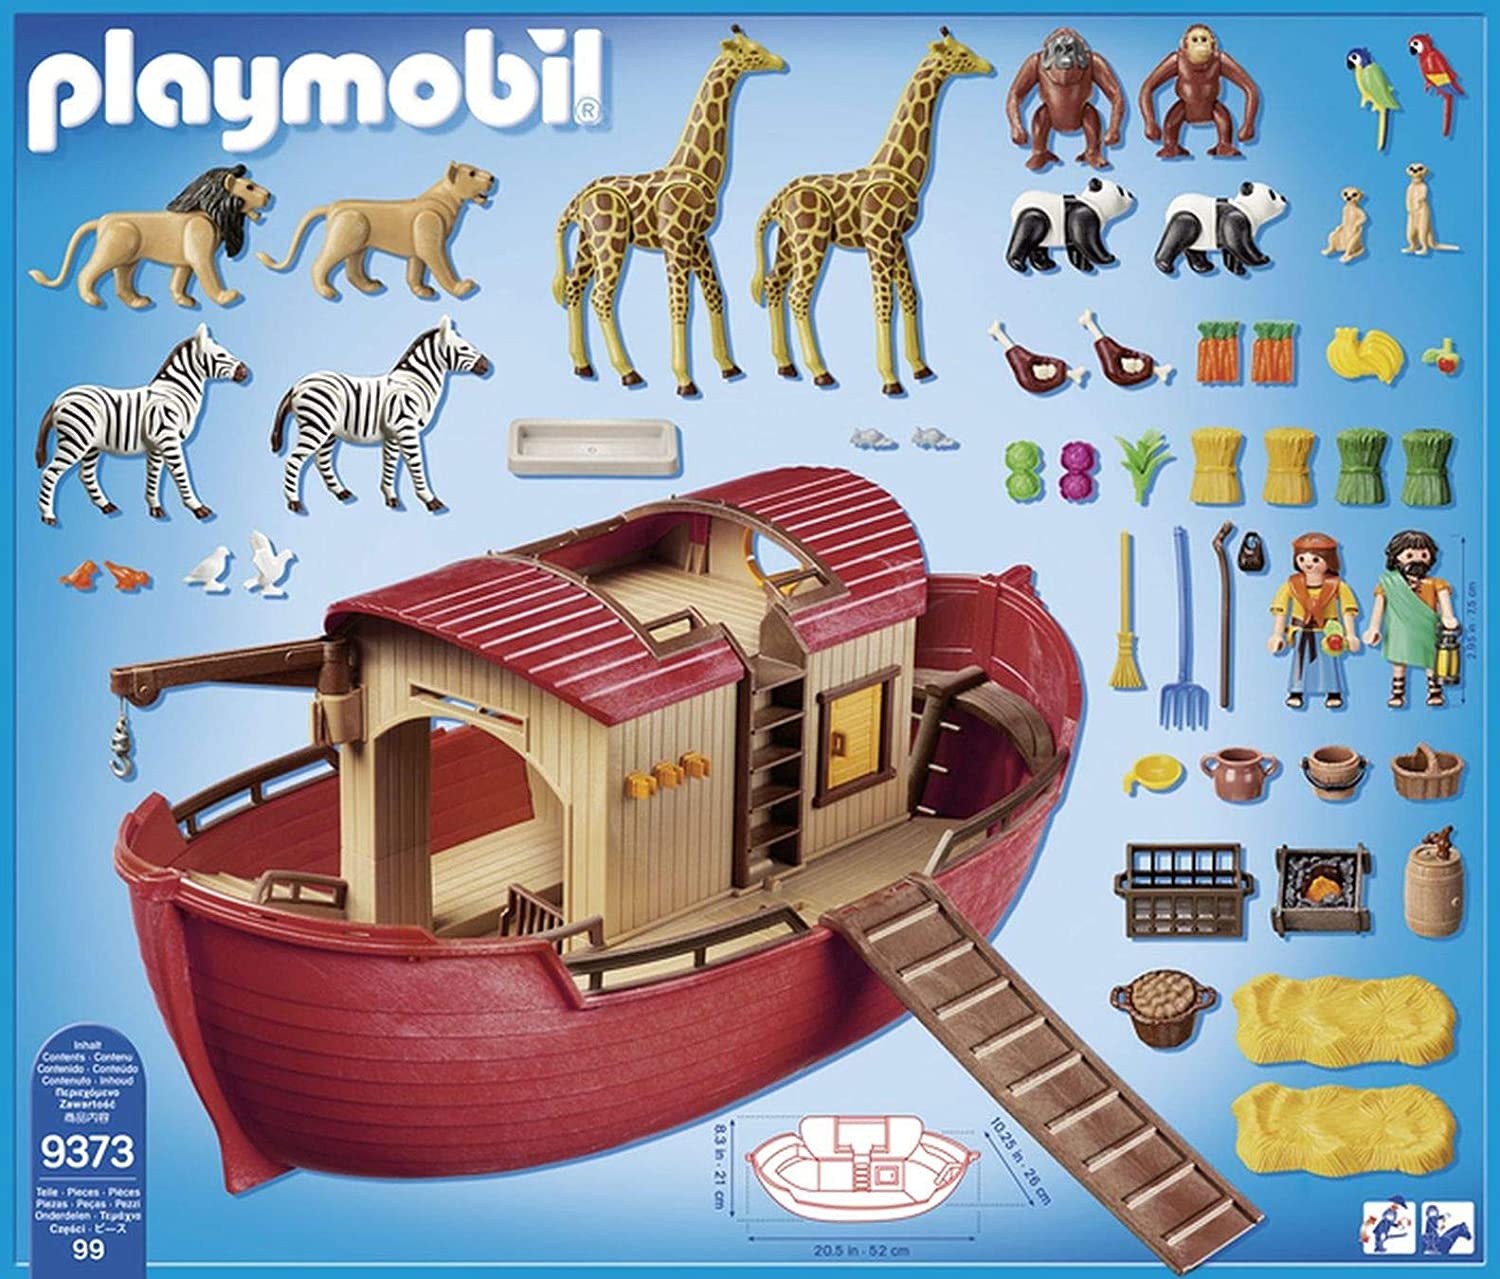 Playmobil 9373 Wild Life Floating Noahs Ark with Functioning Crane